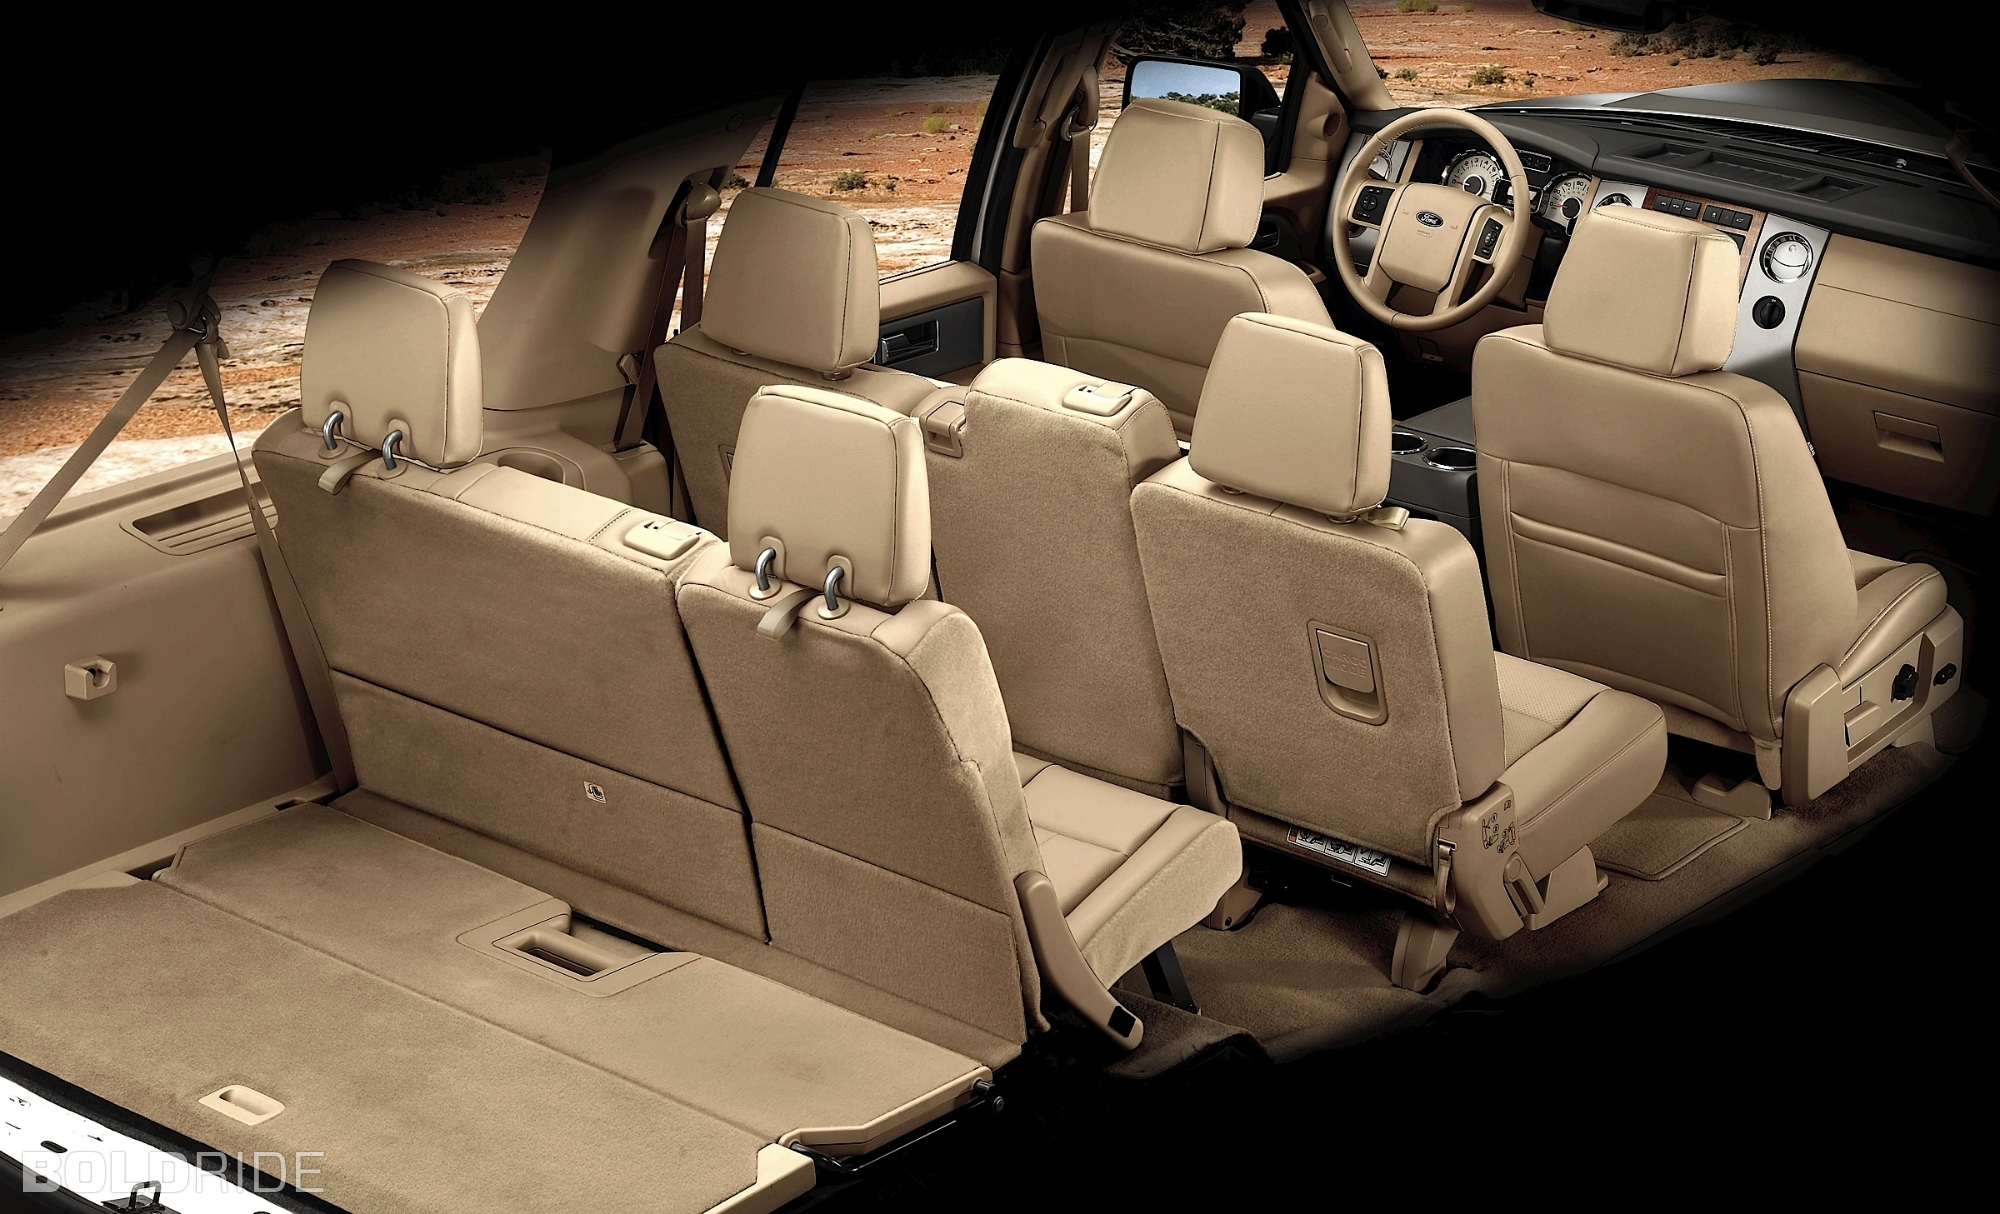 Ford Expedition El >> 2010 FORD EXPEDITION - Image #7